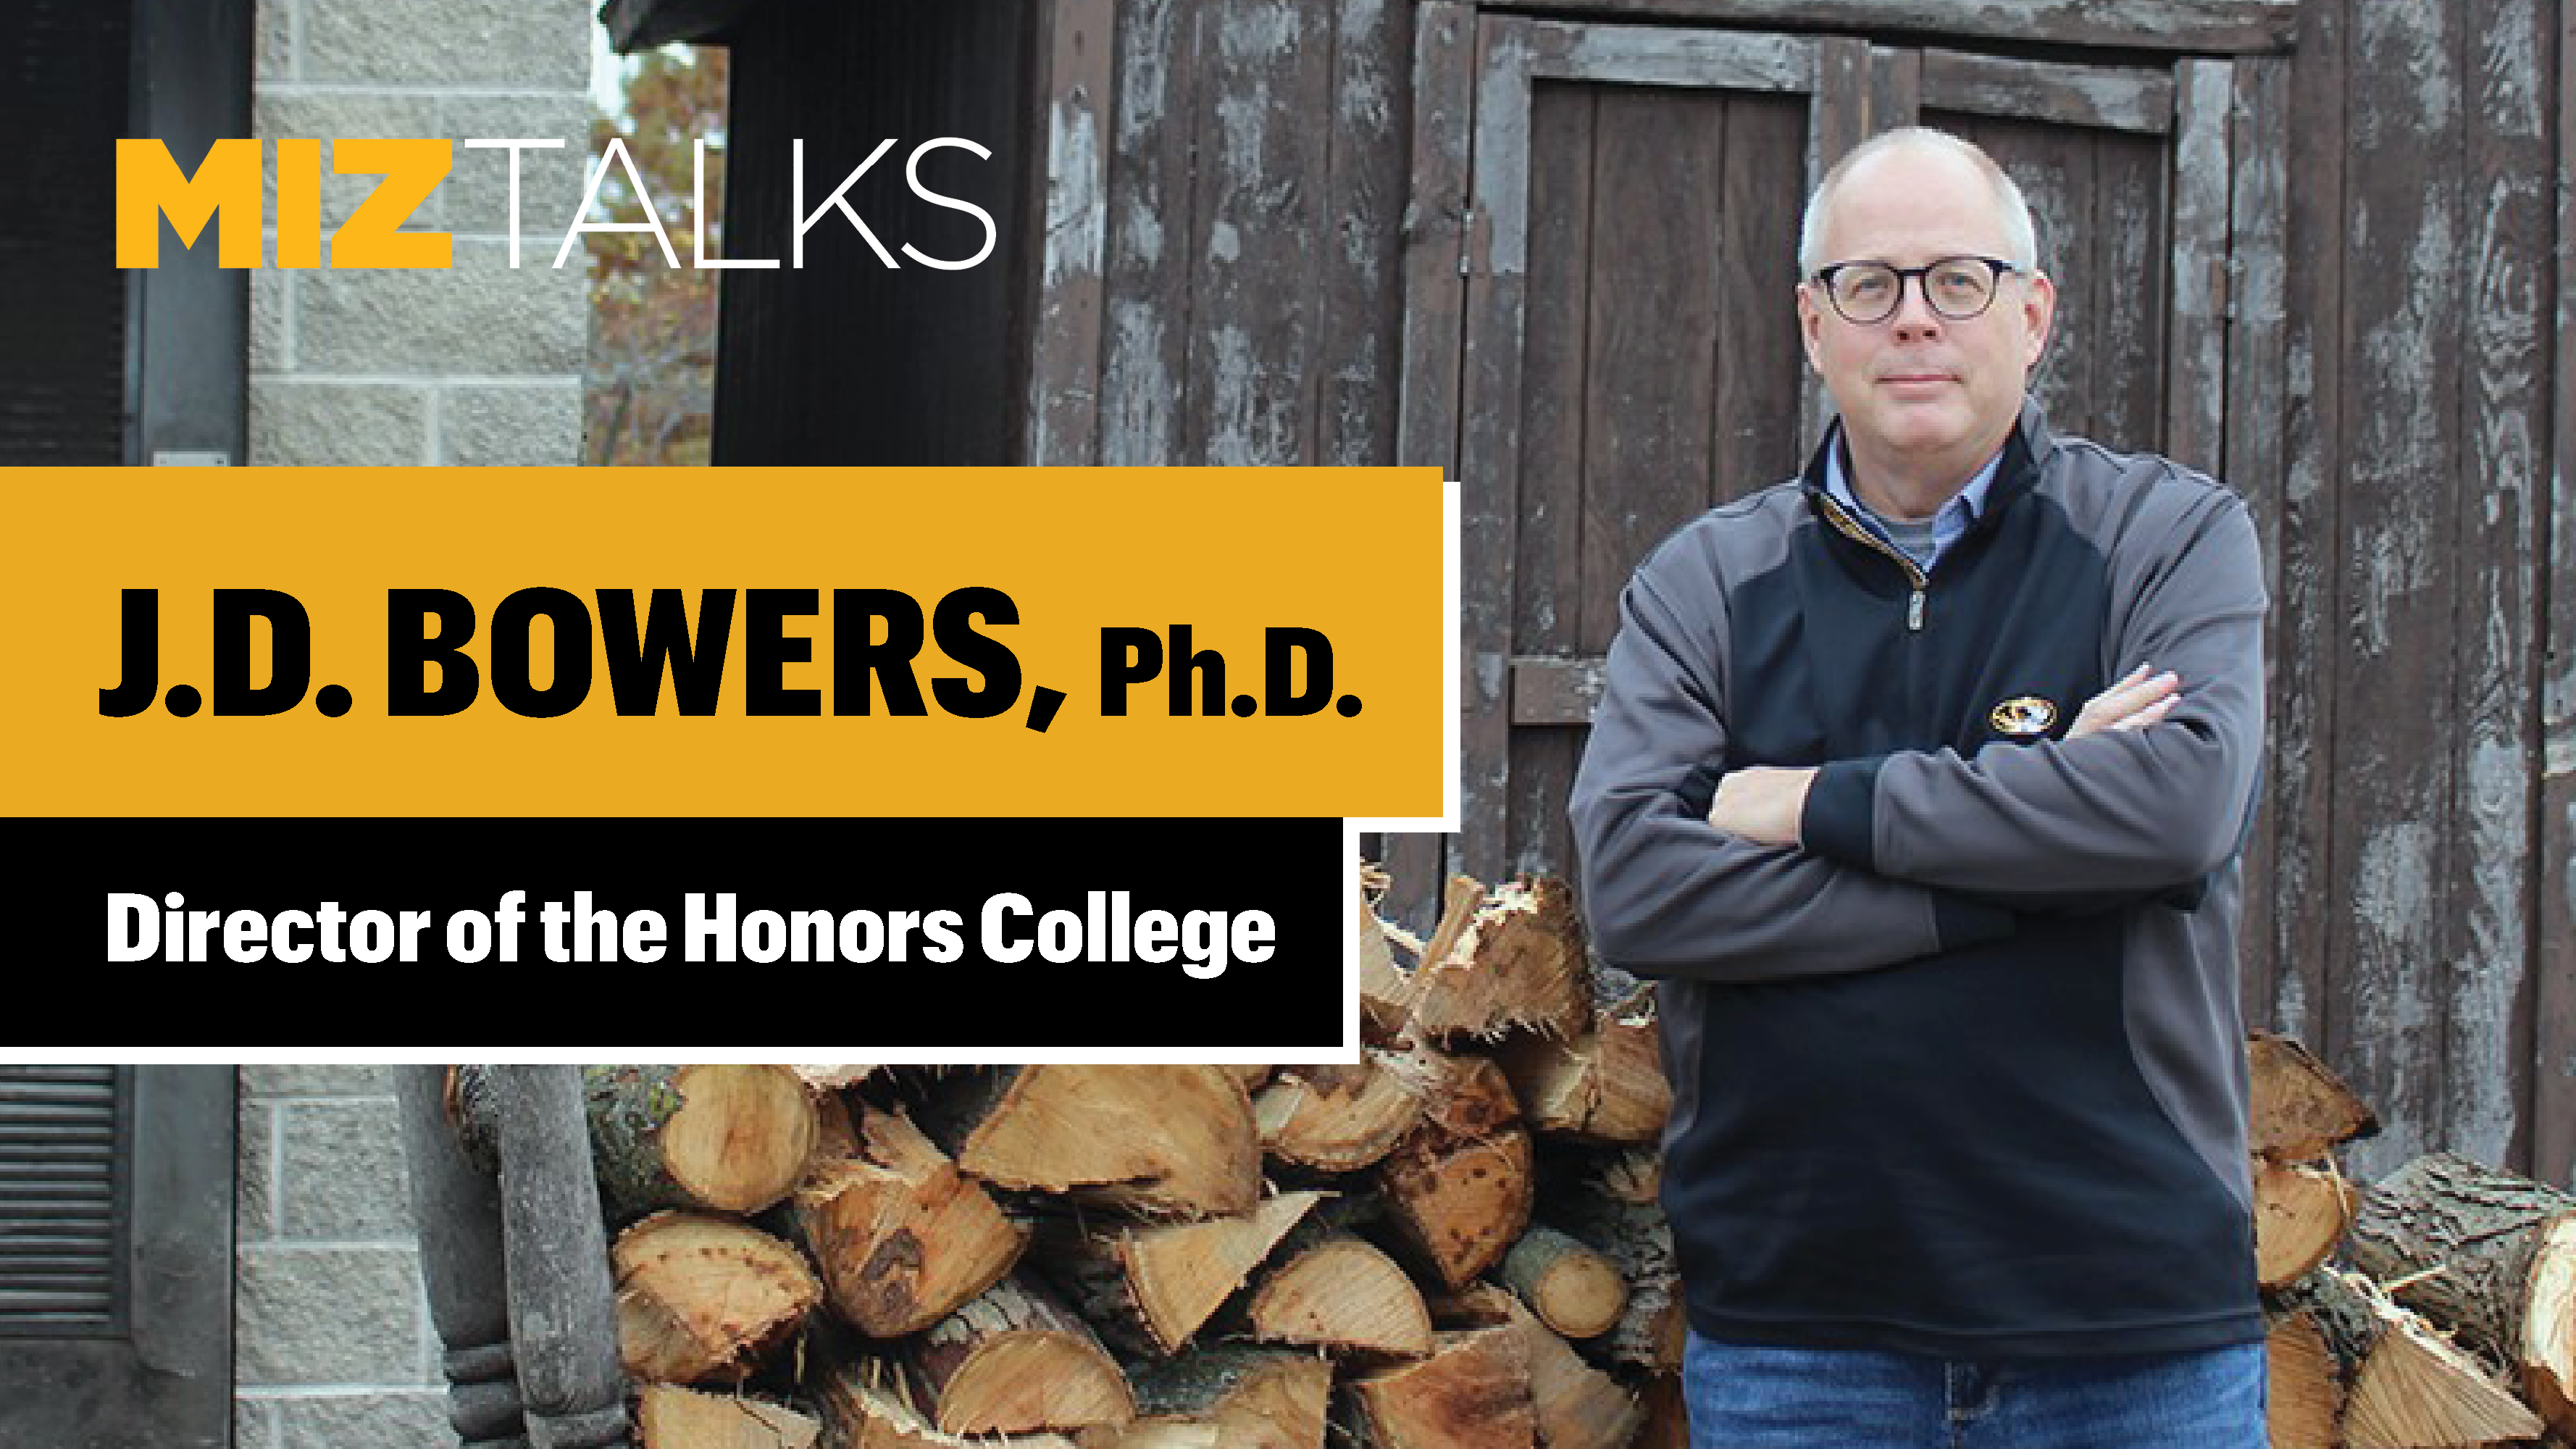 Image for MIZZOU LEADS with J.D. Bowers webinar